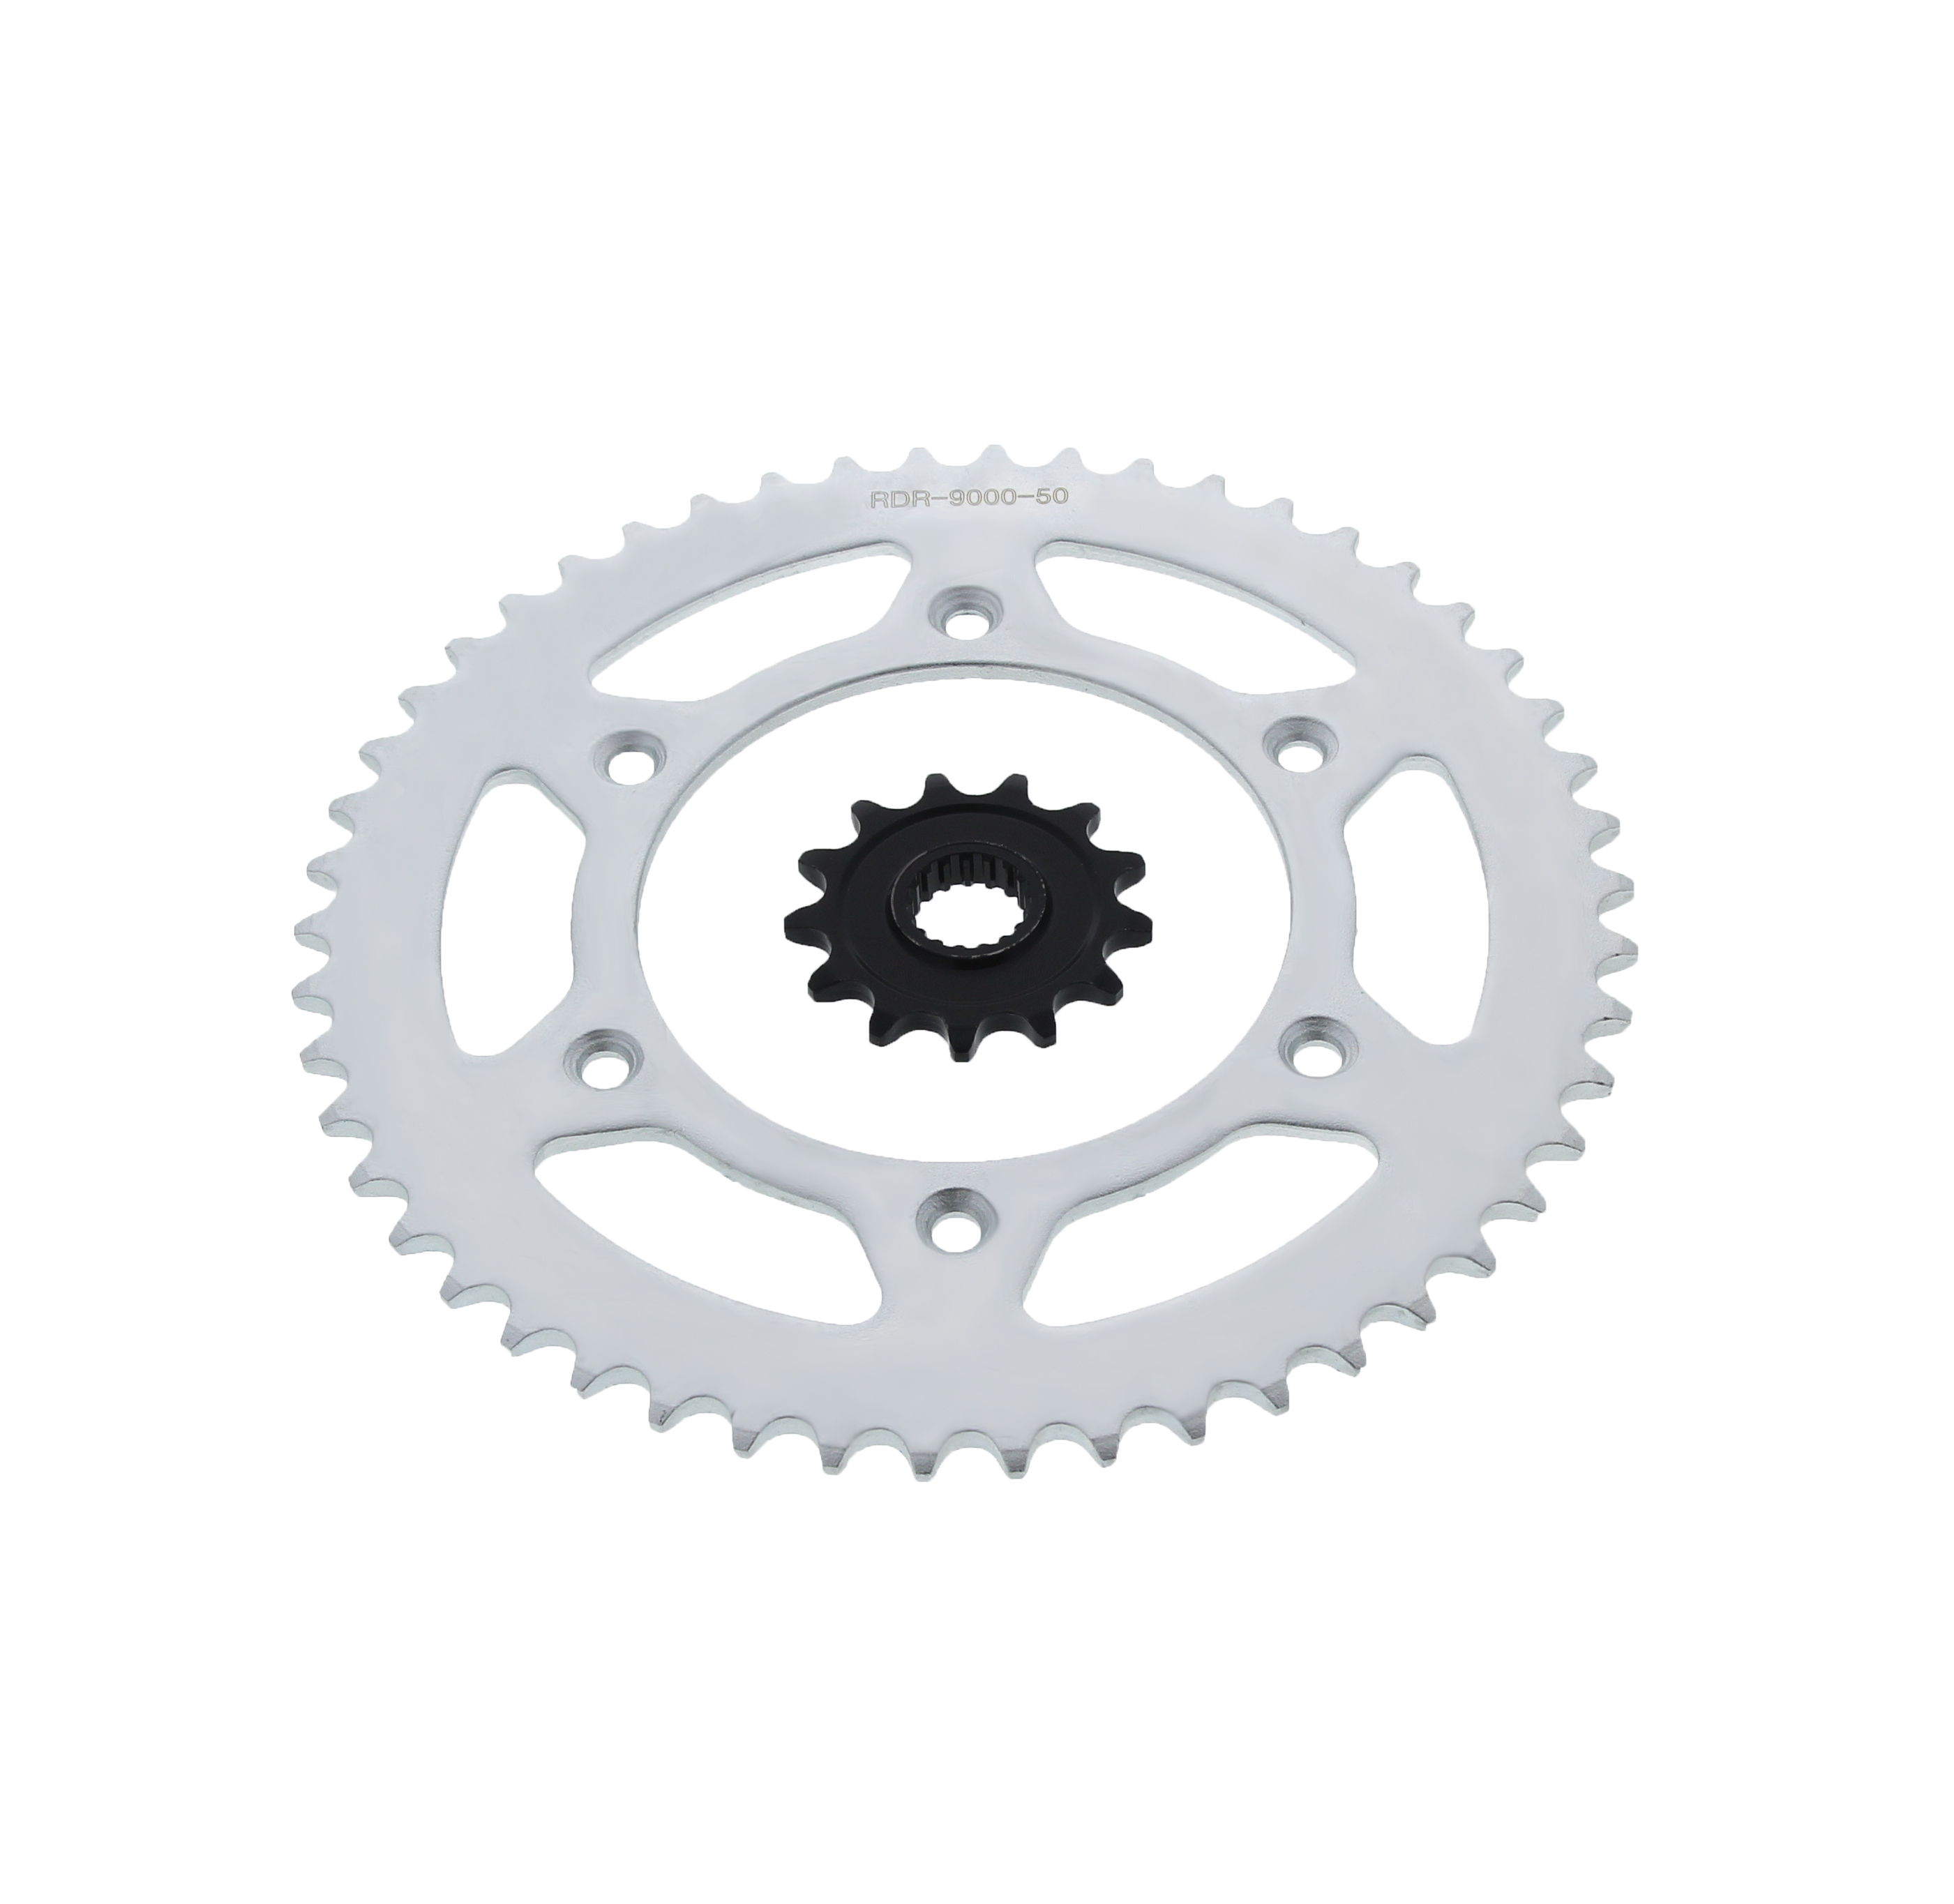 1999-2004 Honda TRX400EX 400EX 13 Tooth Front /& 38 Tooth Rear Silver Sprocket